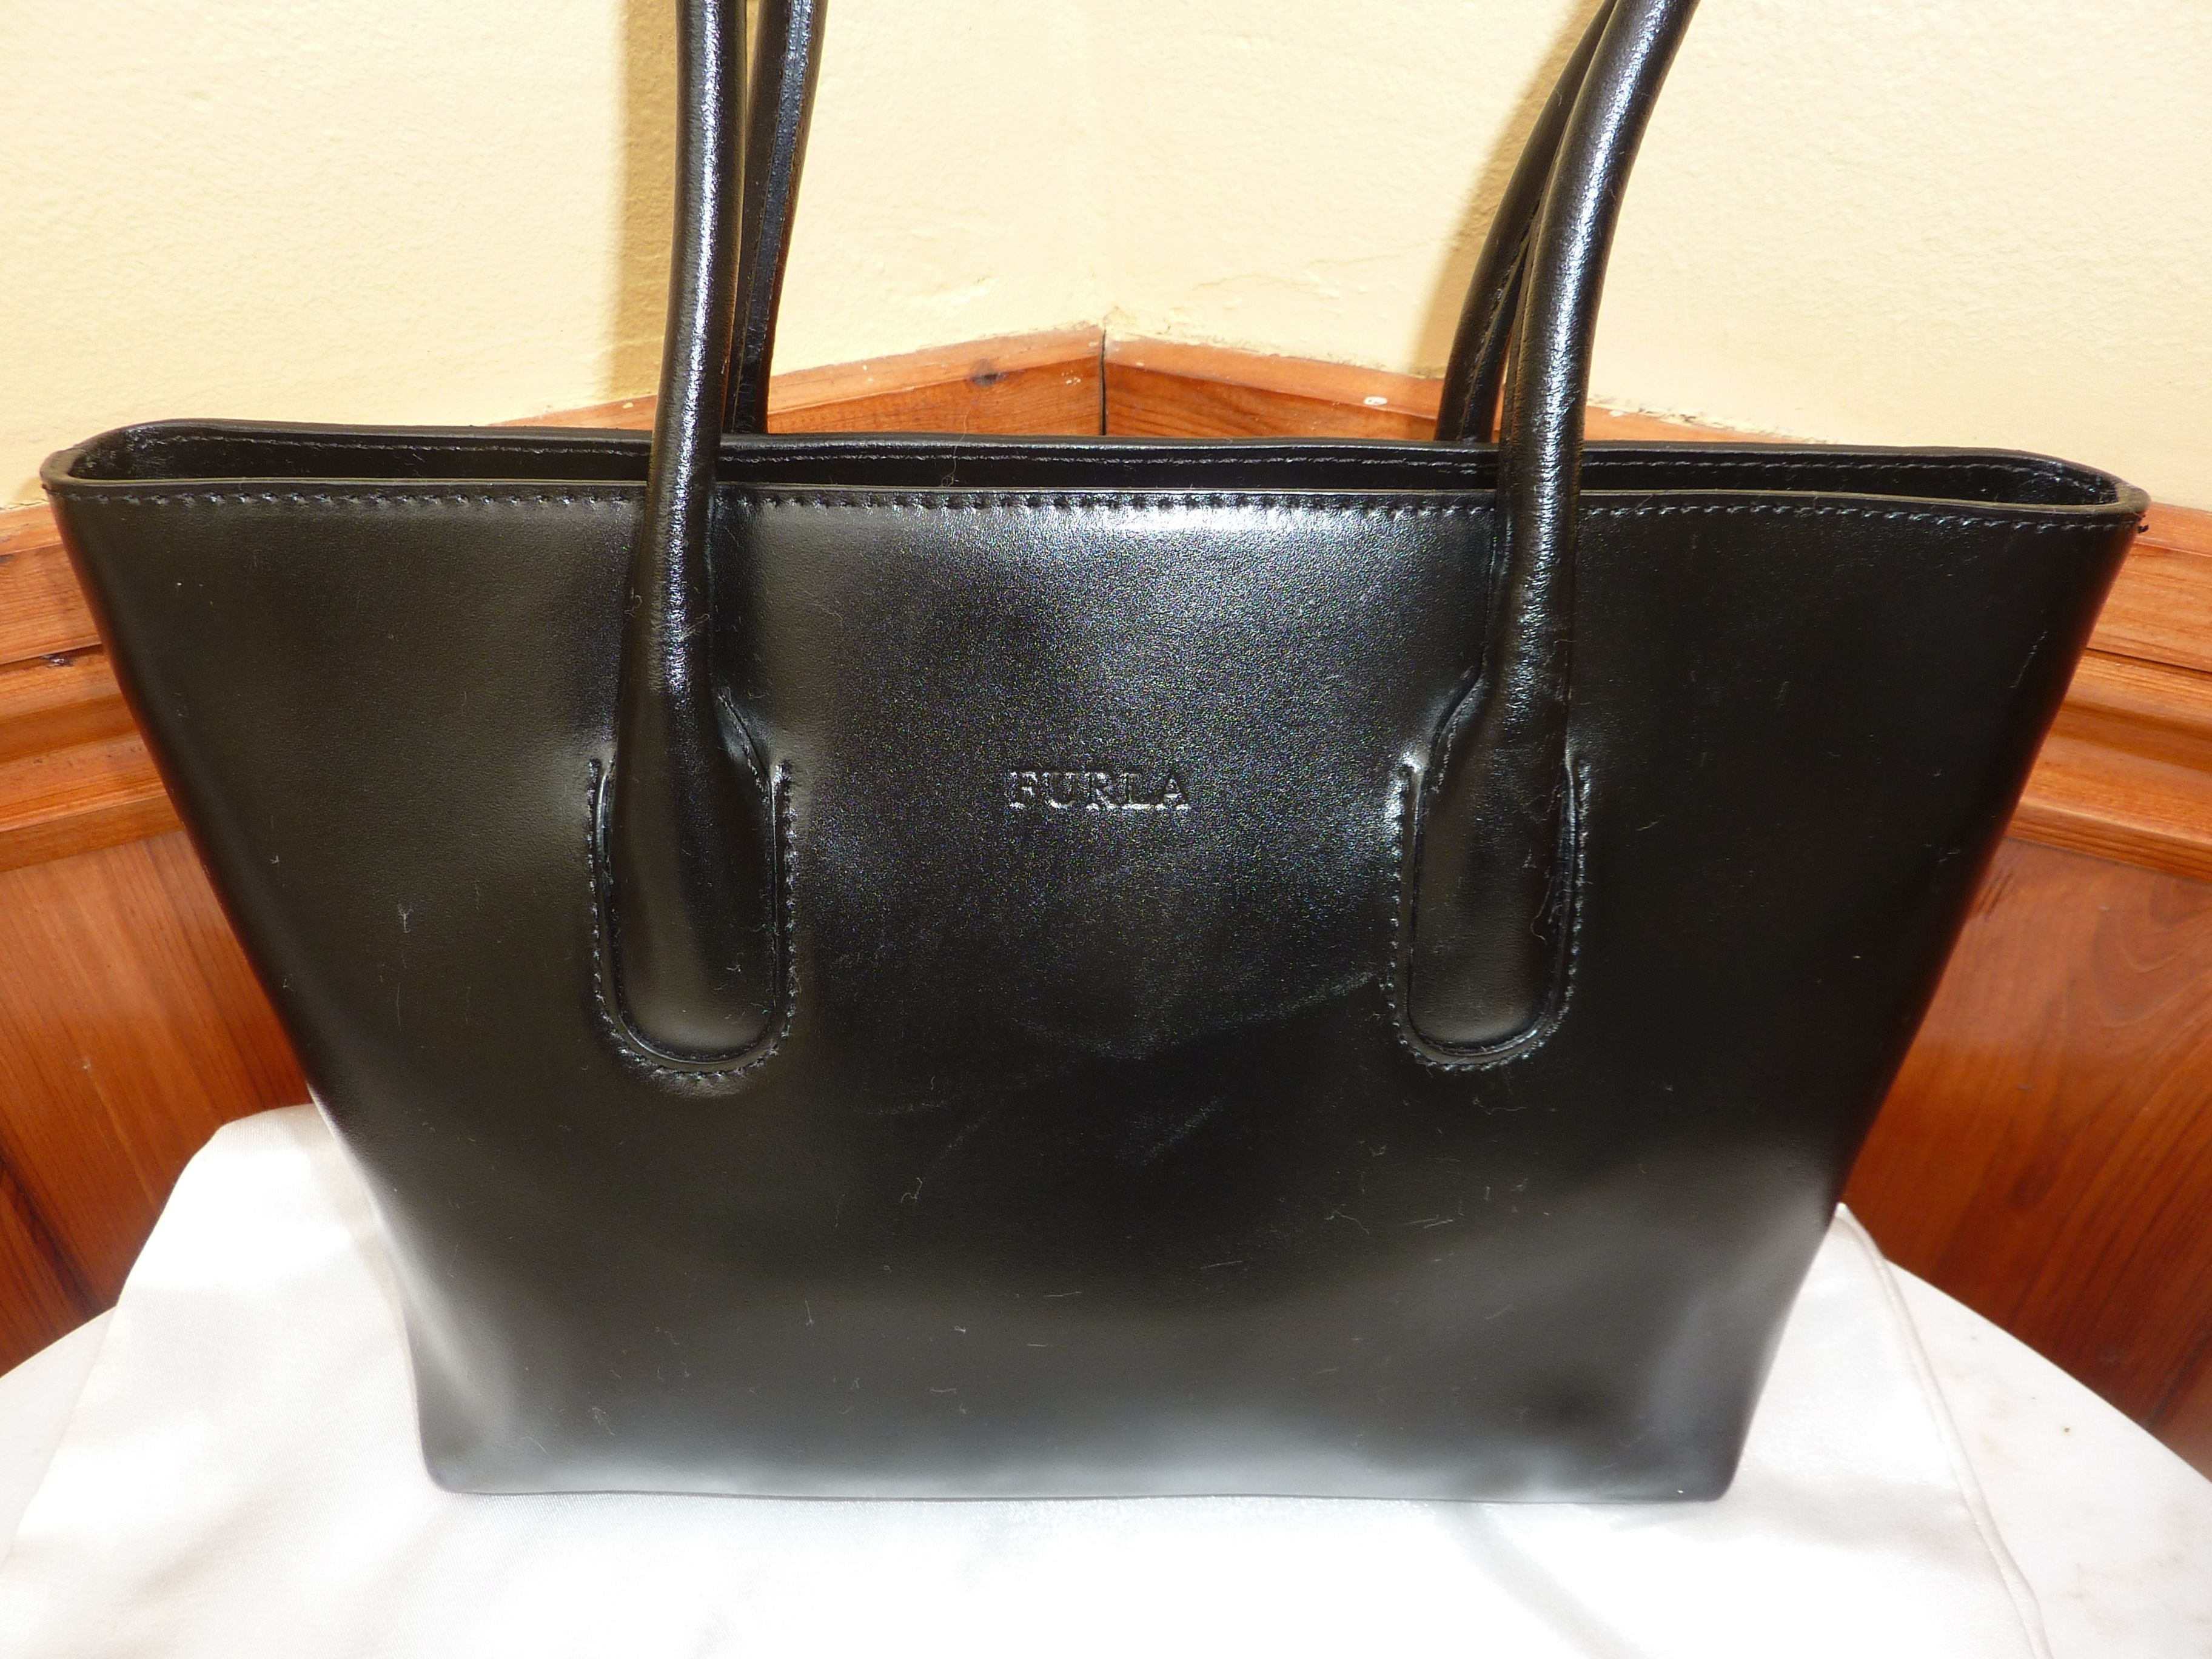 Furla Small Leather Black Shoulder Bag Dustbag 44 99 Including Free Shipping To The